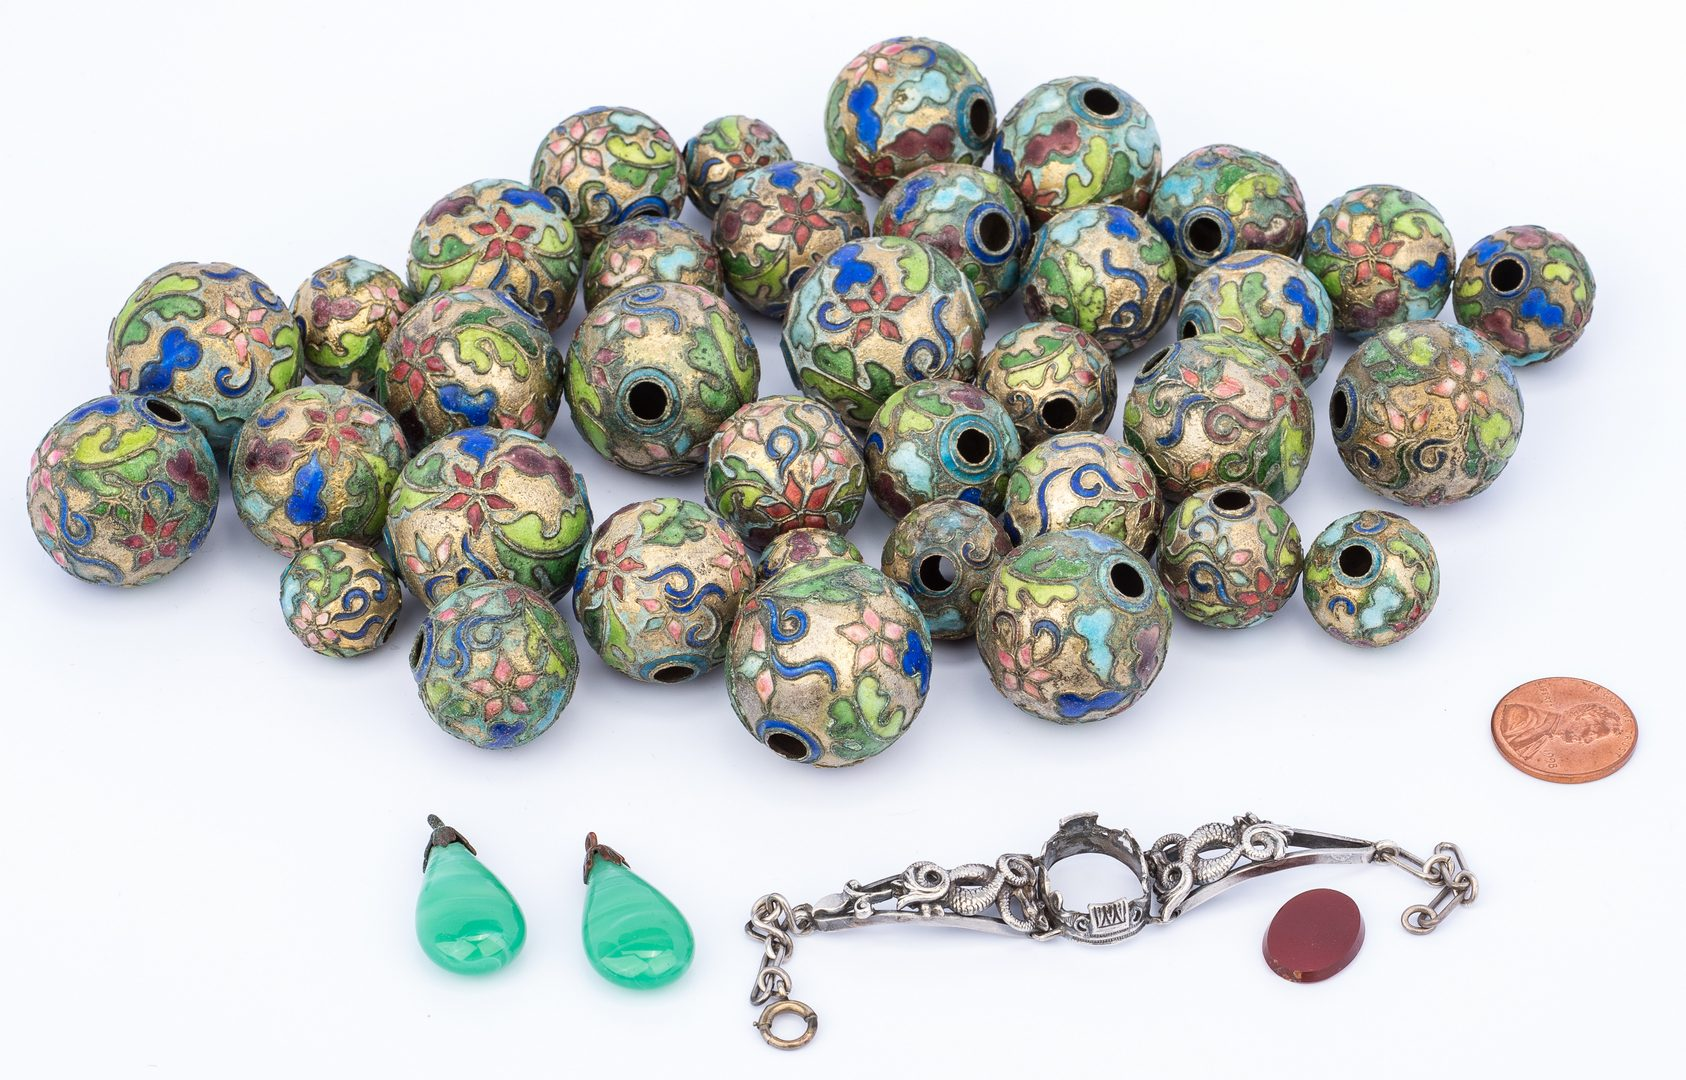 Lot 27: 3 Asian Jewelry Items, inc. Cloisonne Beads